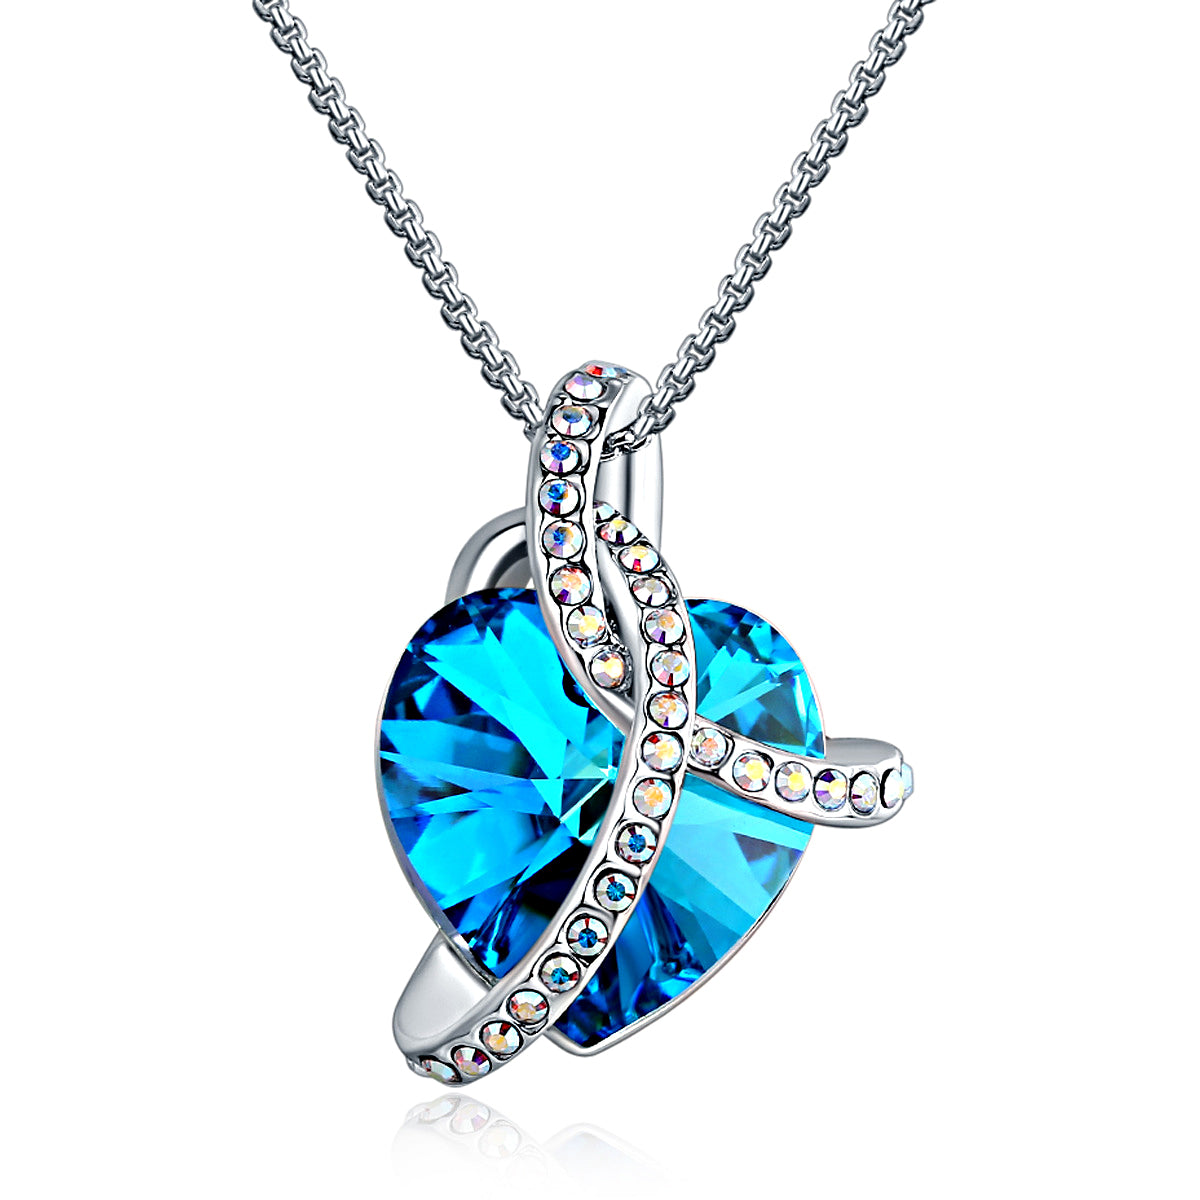 CLÉMENT & HILTON 925 Sterling Silver Crystal from Swarovski Necklace with Delicate Gift Box